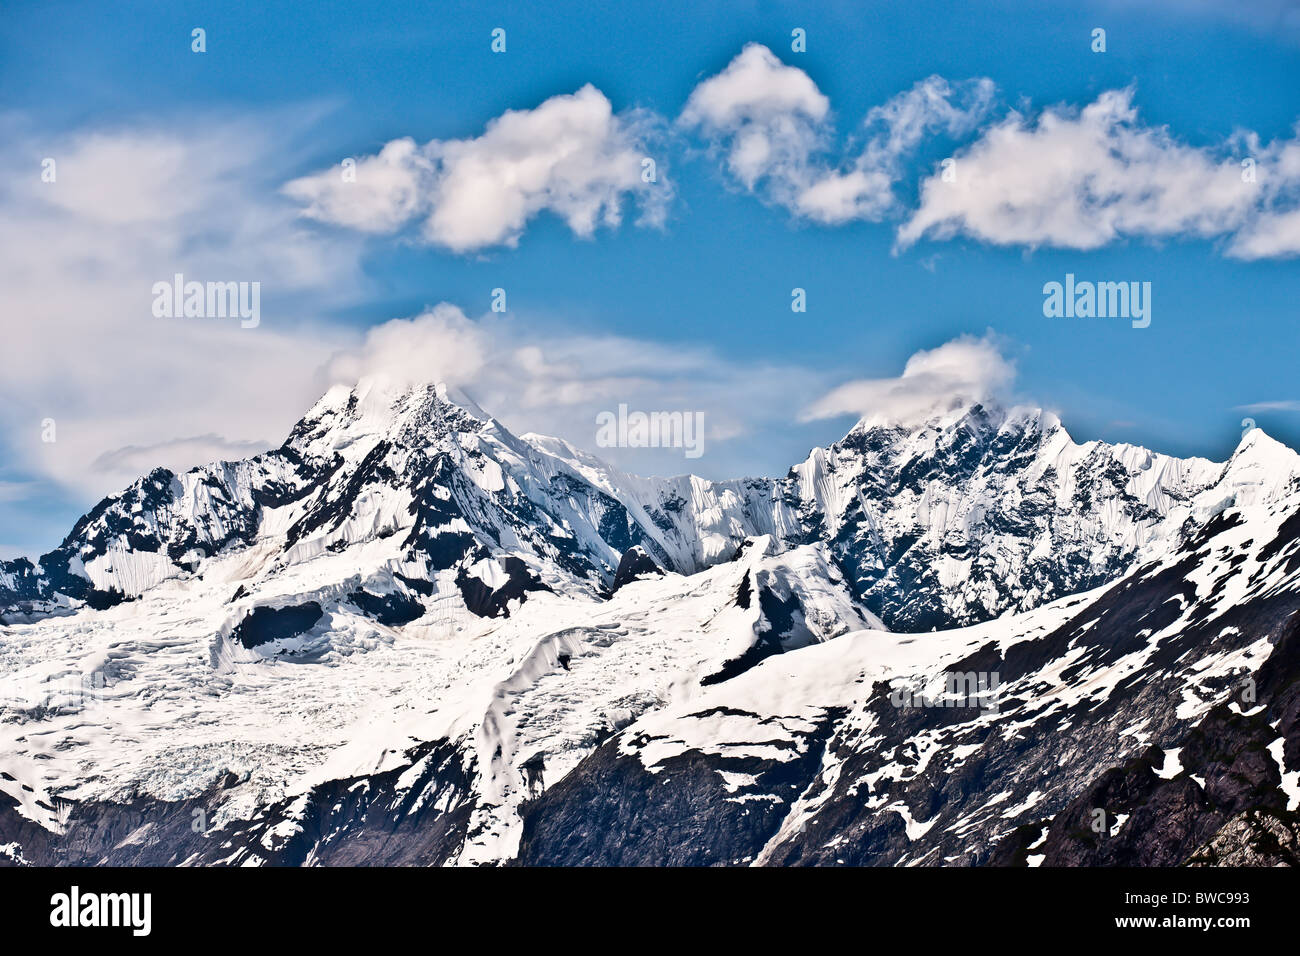 View of a mountain range of Alaska, Glacier Bay, Ice Caps and Mountains - Stock Image